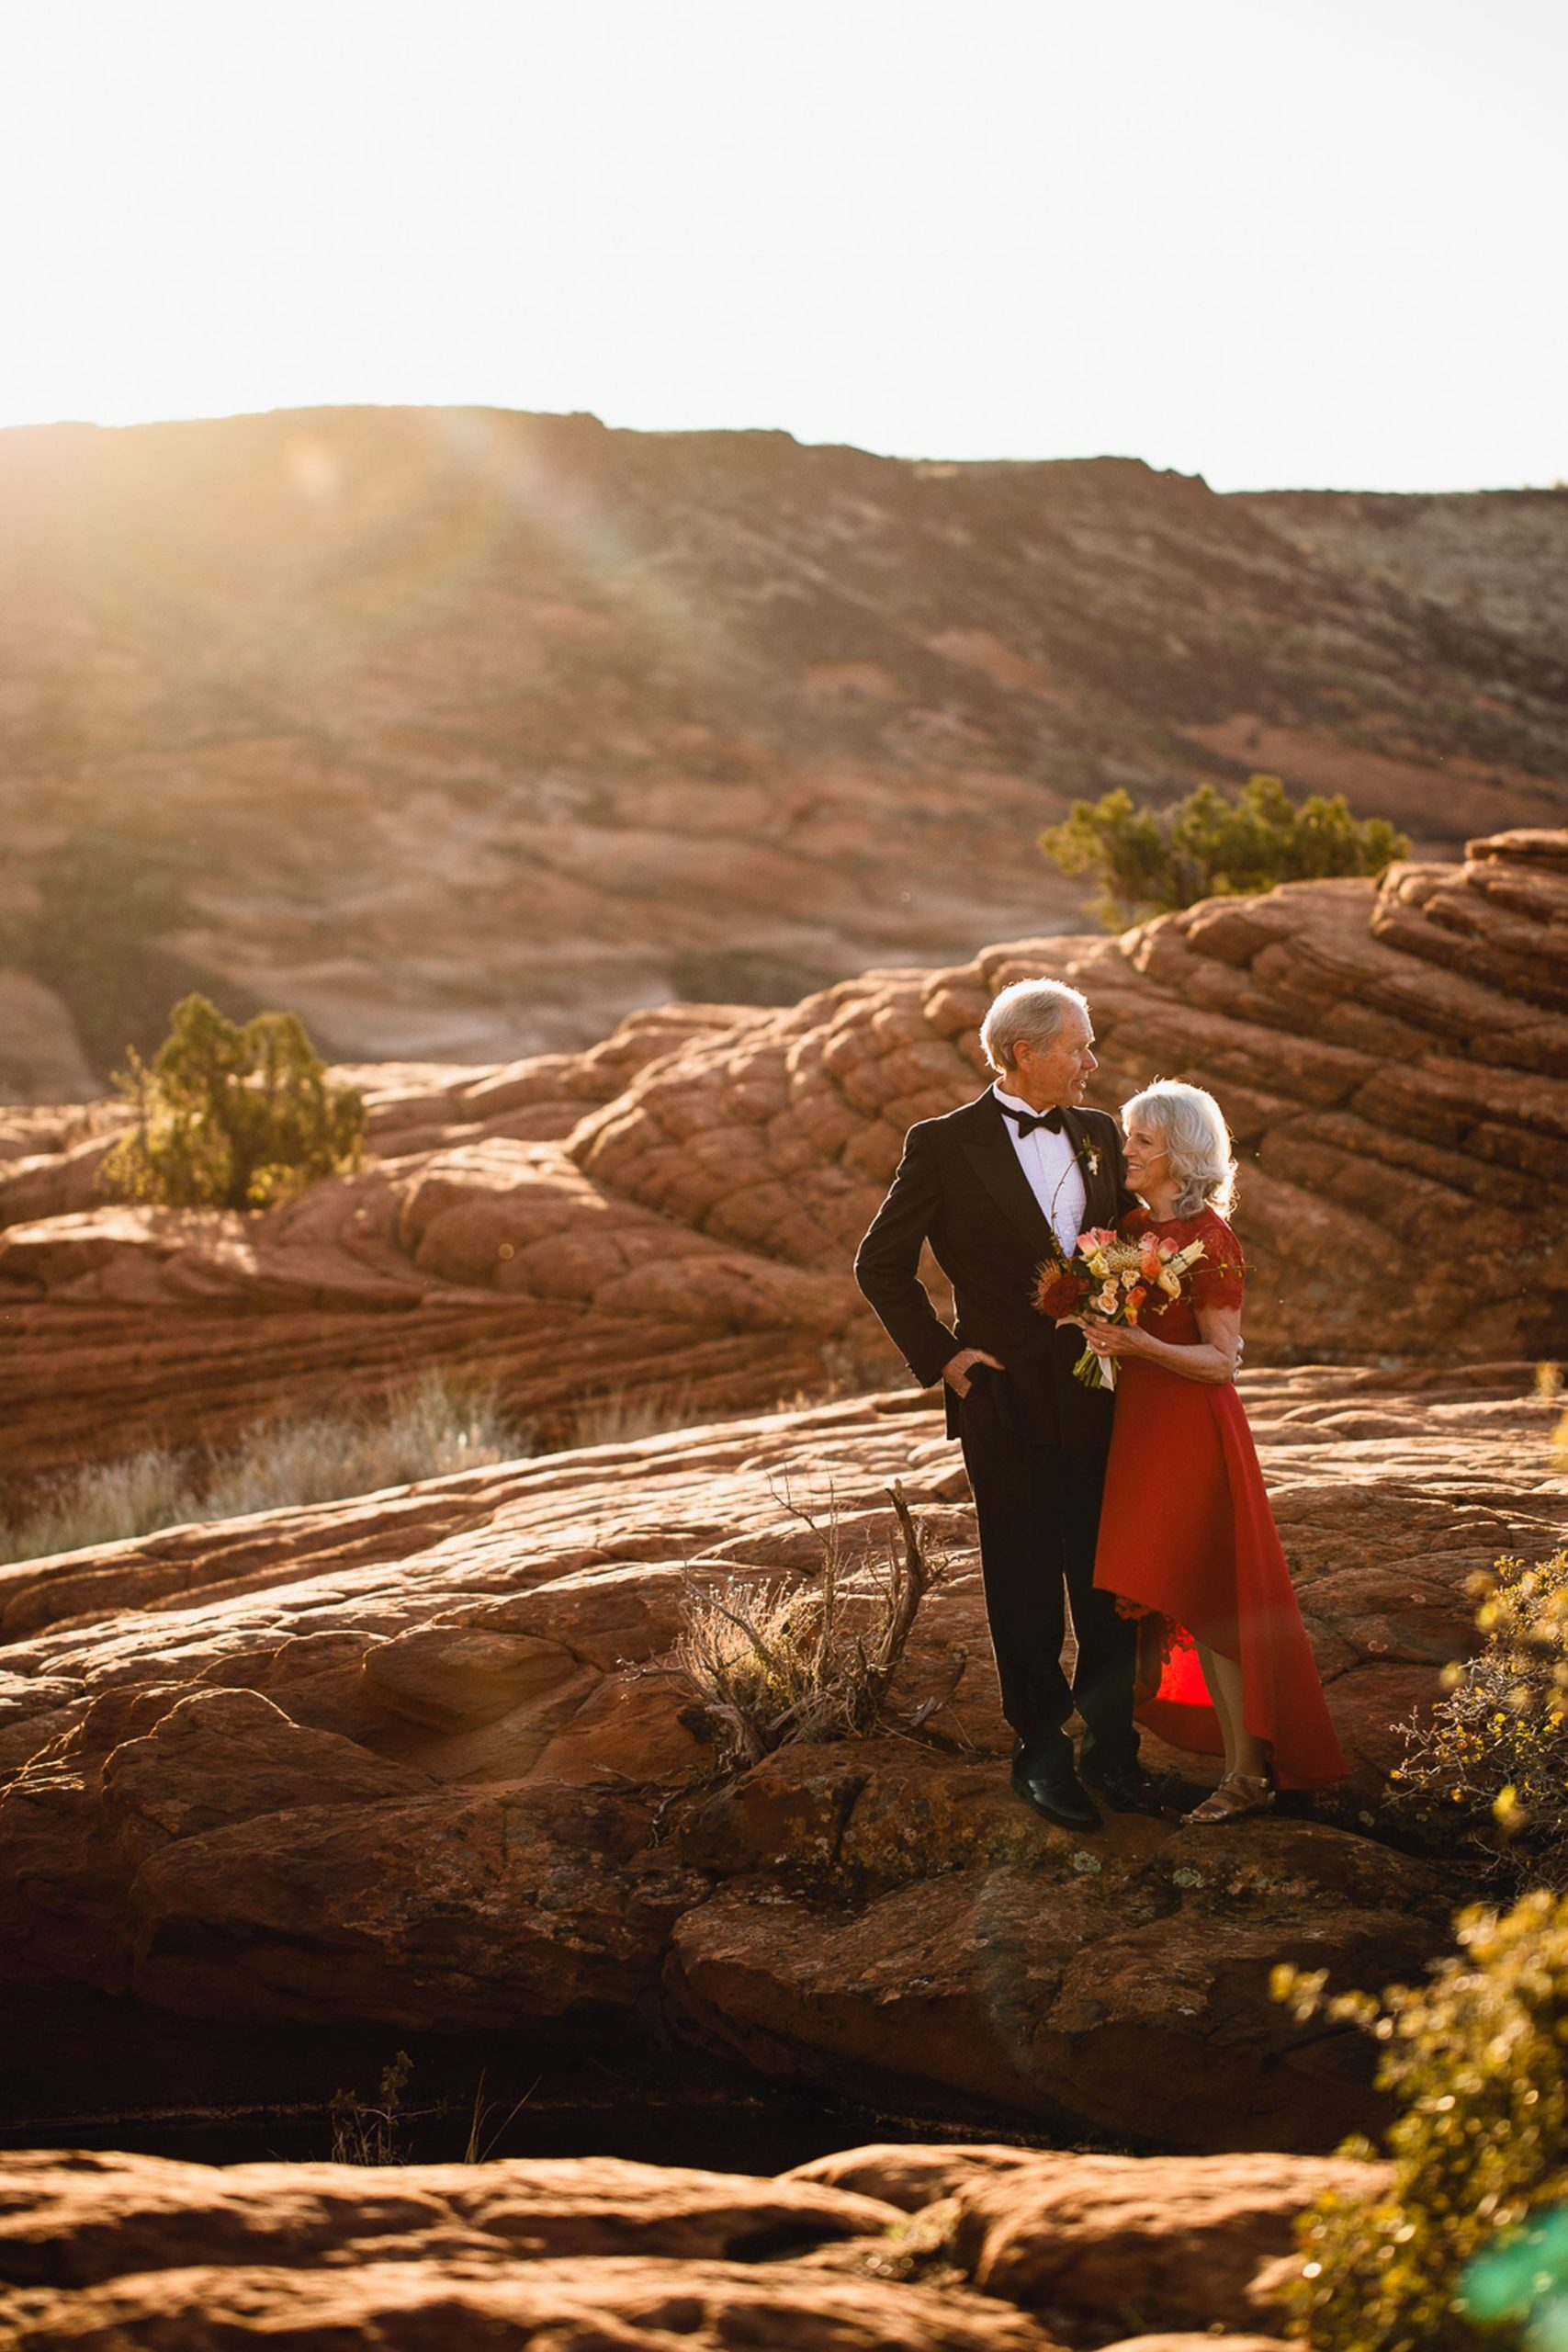 adventure elopement utah desert - recently married couple in the afternoon sun before breathtaking mountain view